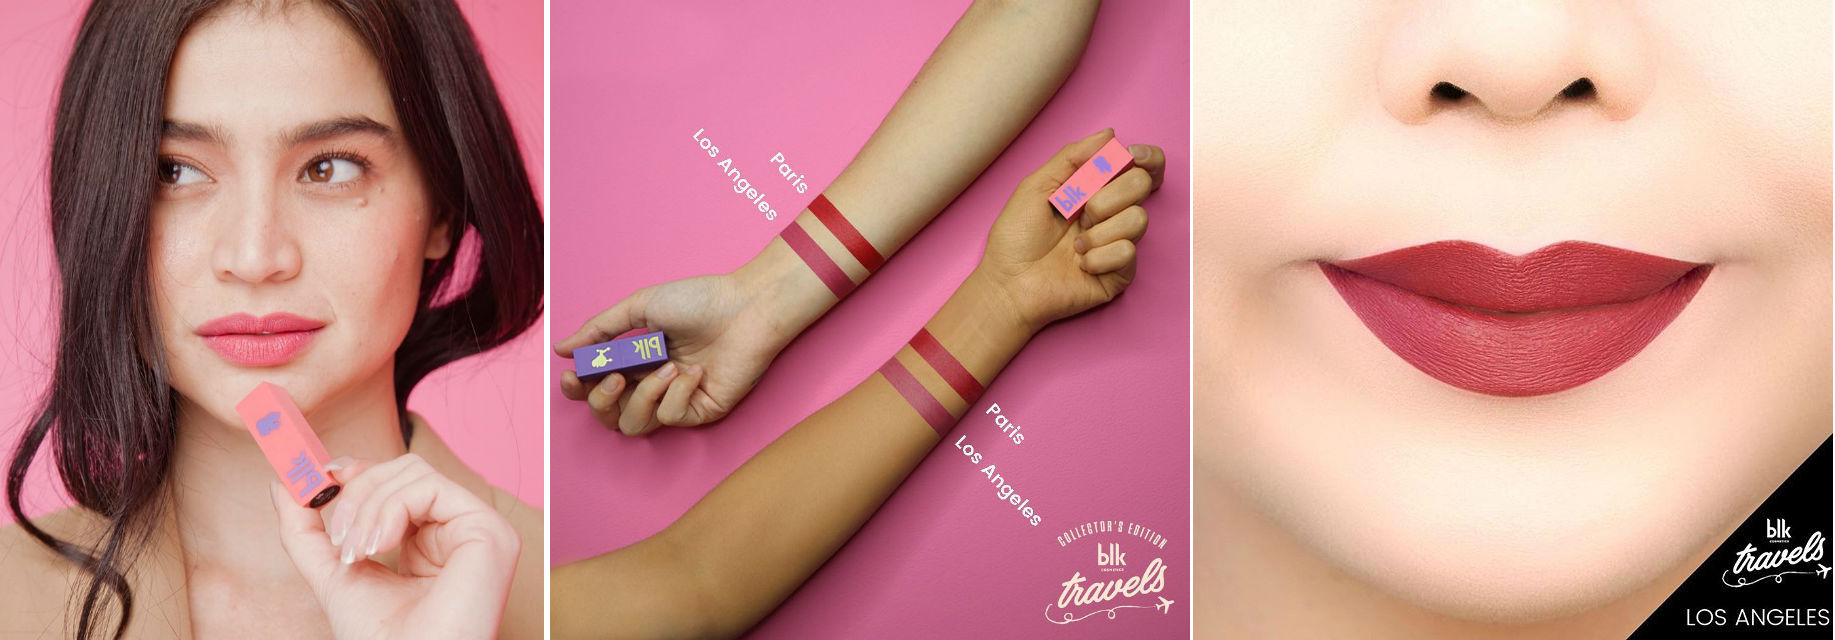 These are all swatches of Los Angeles, as displayed on blk's site and social media